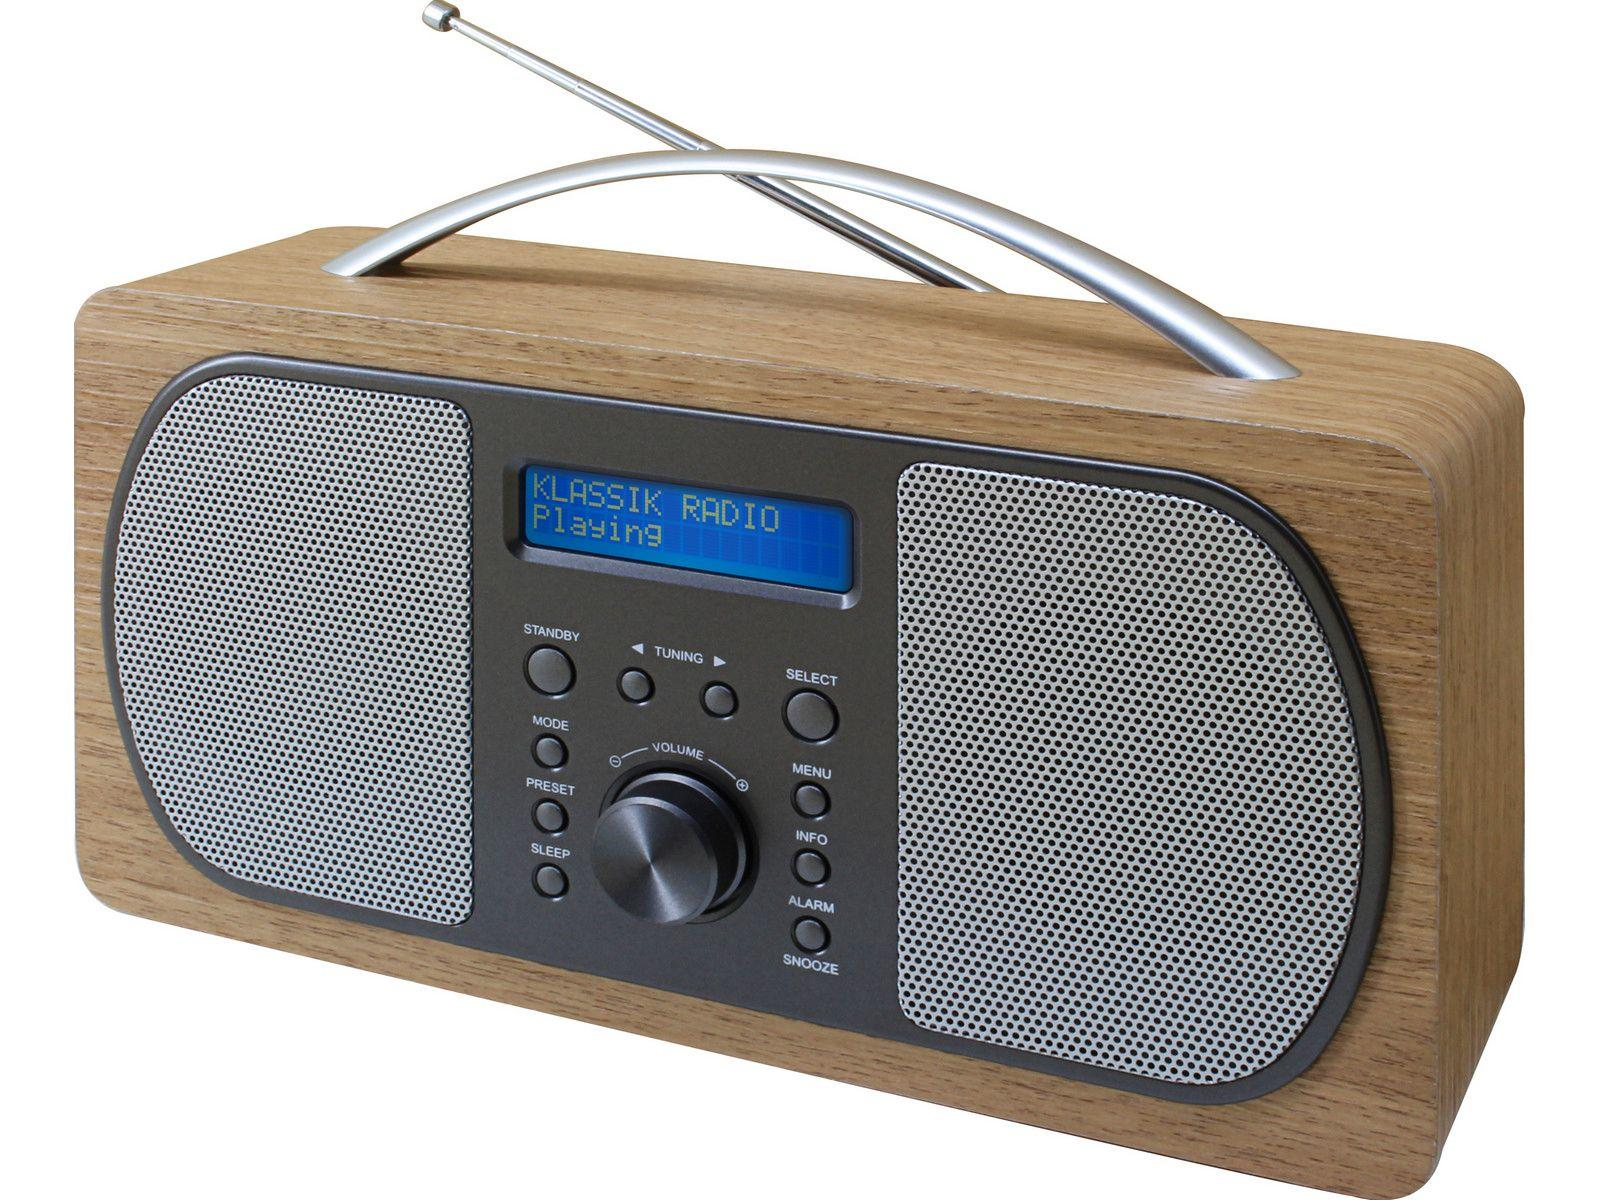 full view of soundmaster DAB600 Portable FM / DAB Radio in light brown